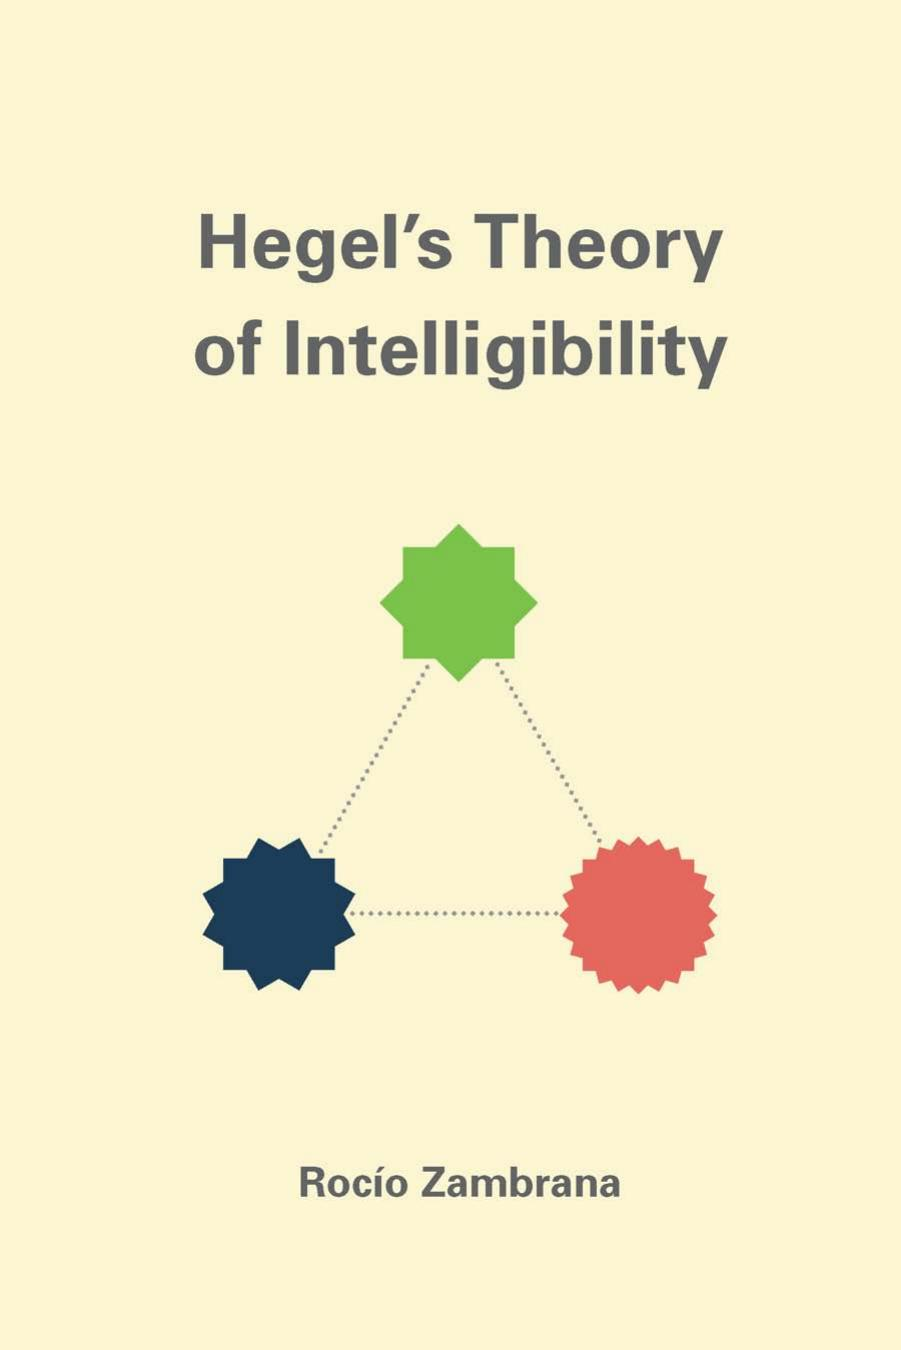 Hegels Theory of Intelligibility